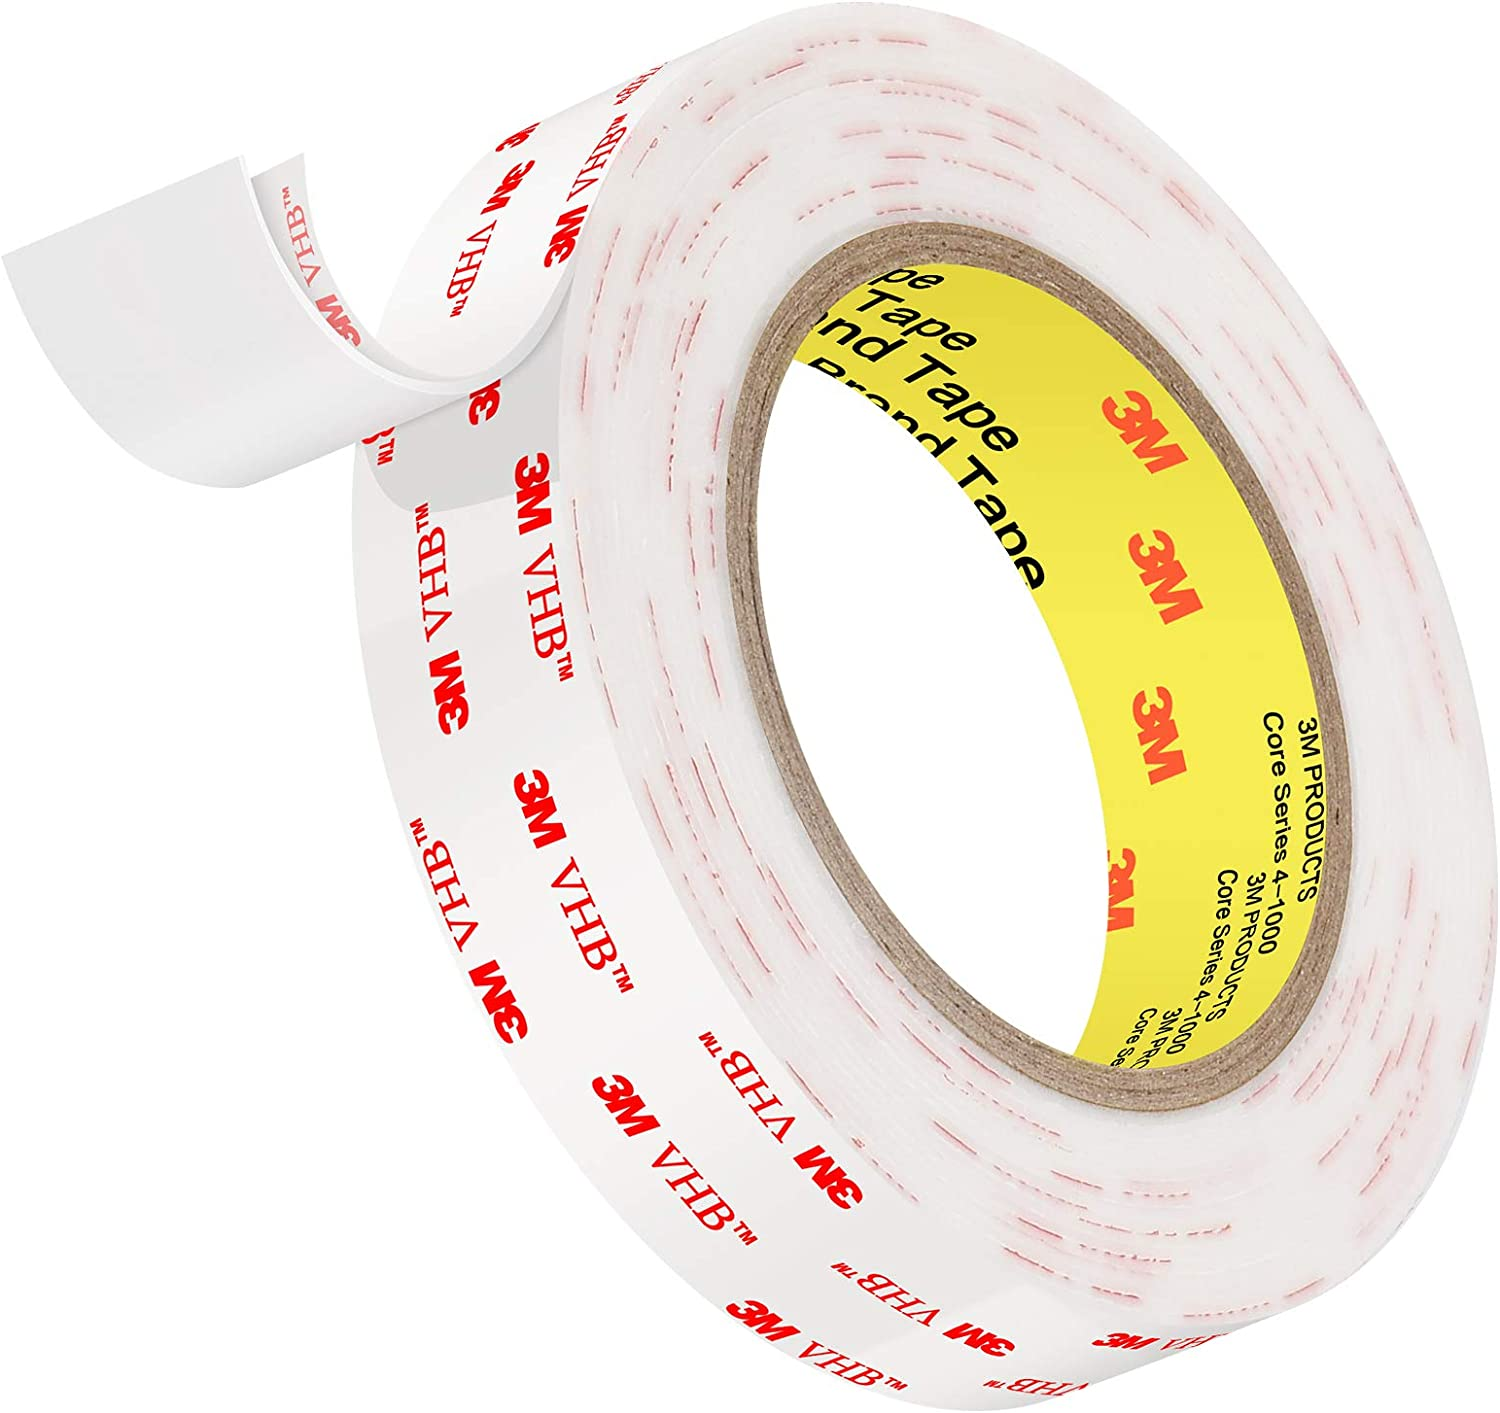 4950 Double Sided Tape, Roseberry Heavy Duty Mounting Waterproof VHB Foam Tape, 16FT Length, 1 Inch Width,1.1mm Thickness for Car, Home and Office Decor